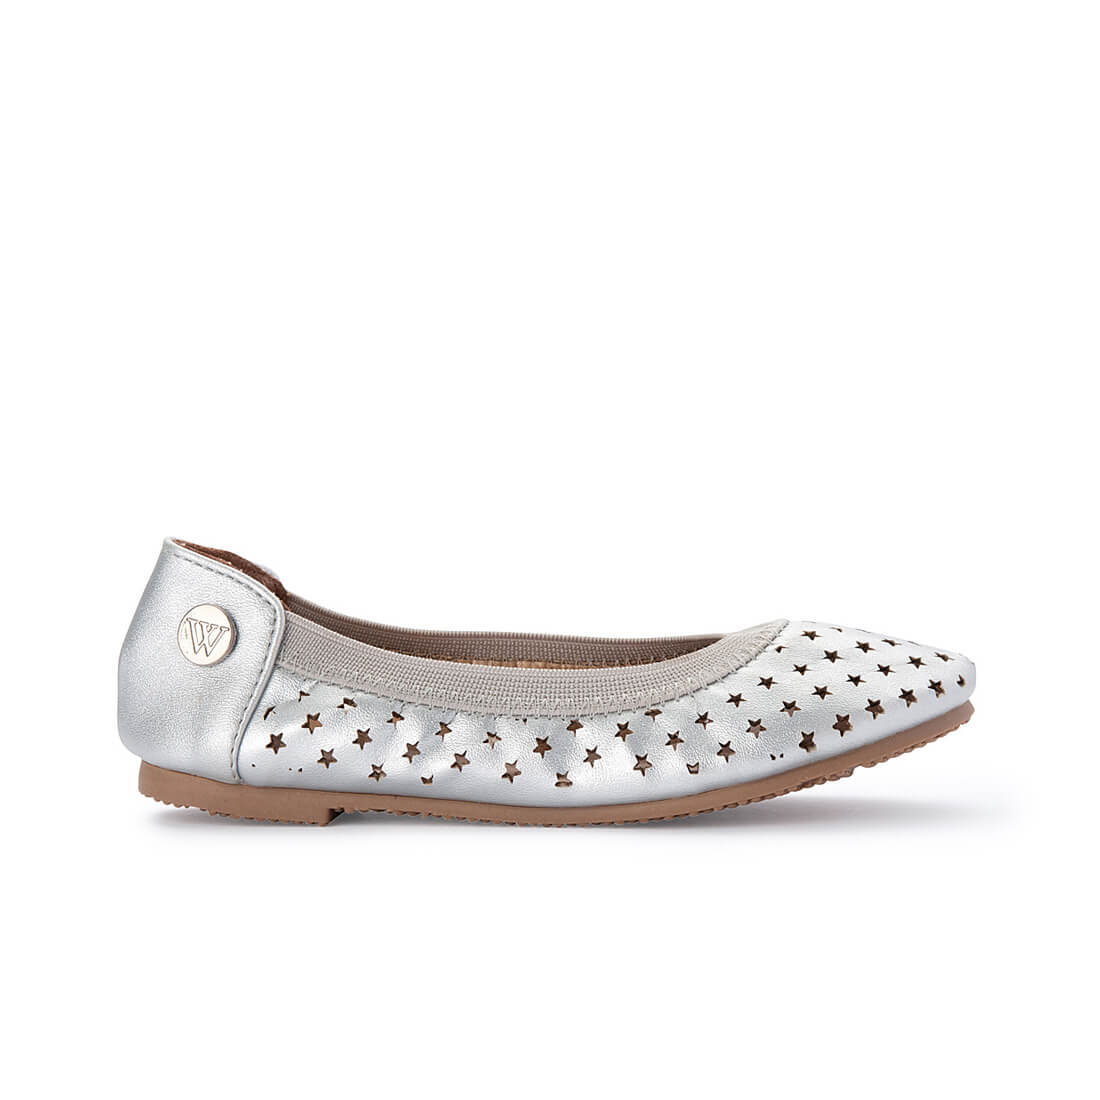 Walnut Catie Starlight Silver Girls Ballet Shoe side